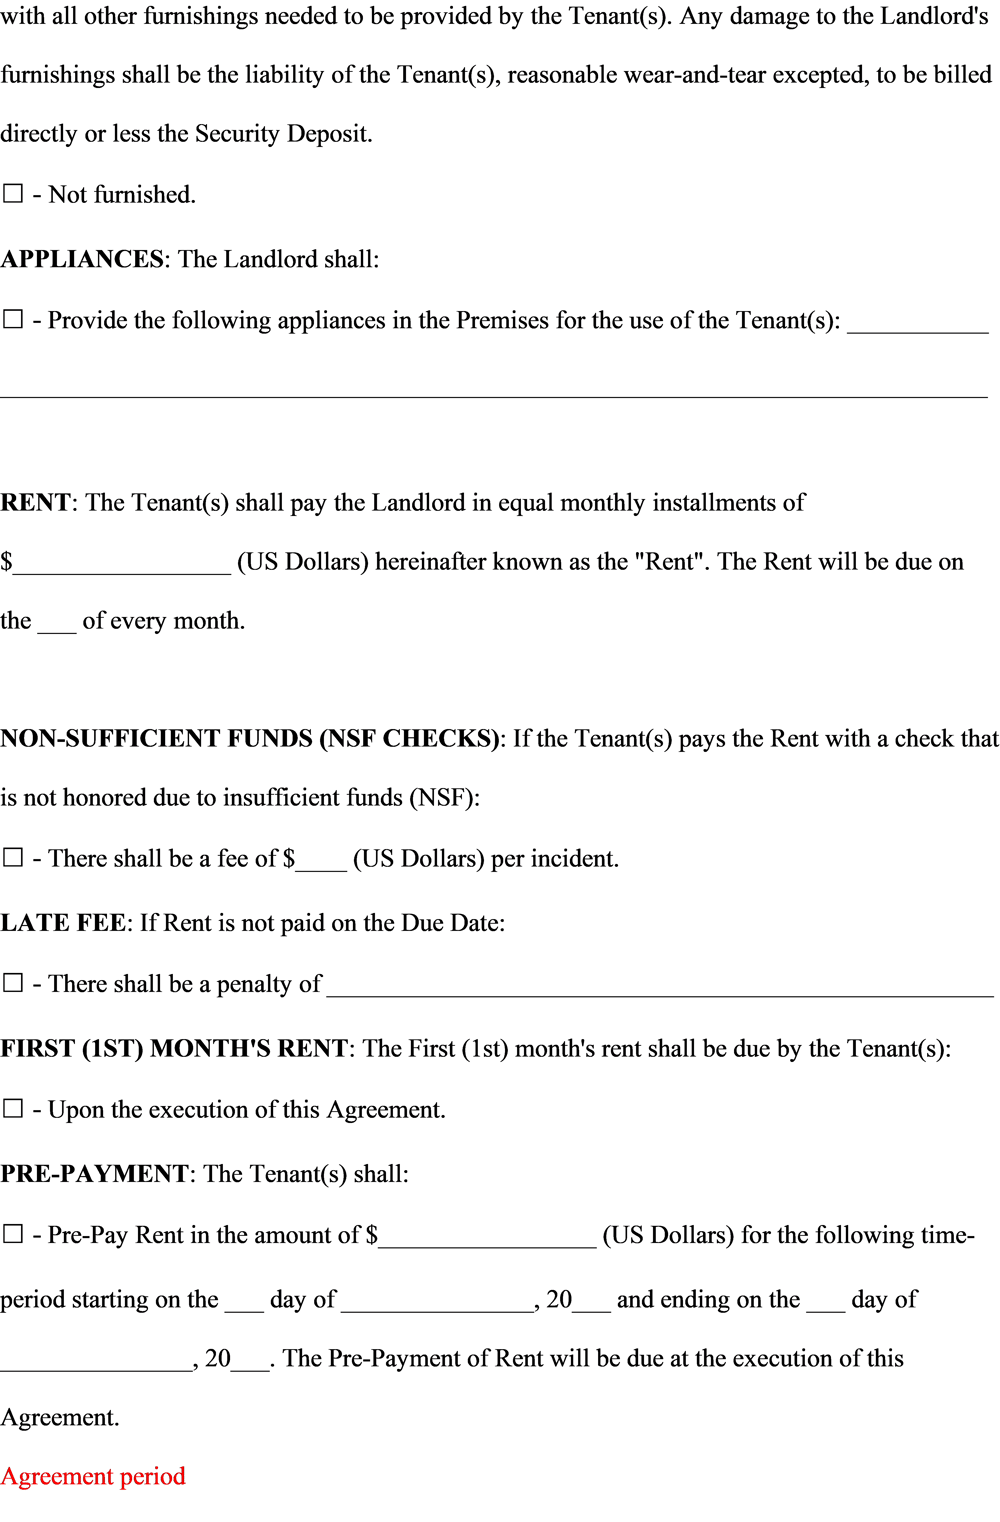 Lease Agreement Assignment - image 2 - student project